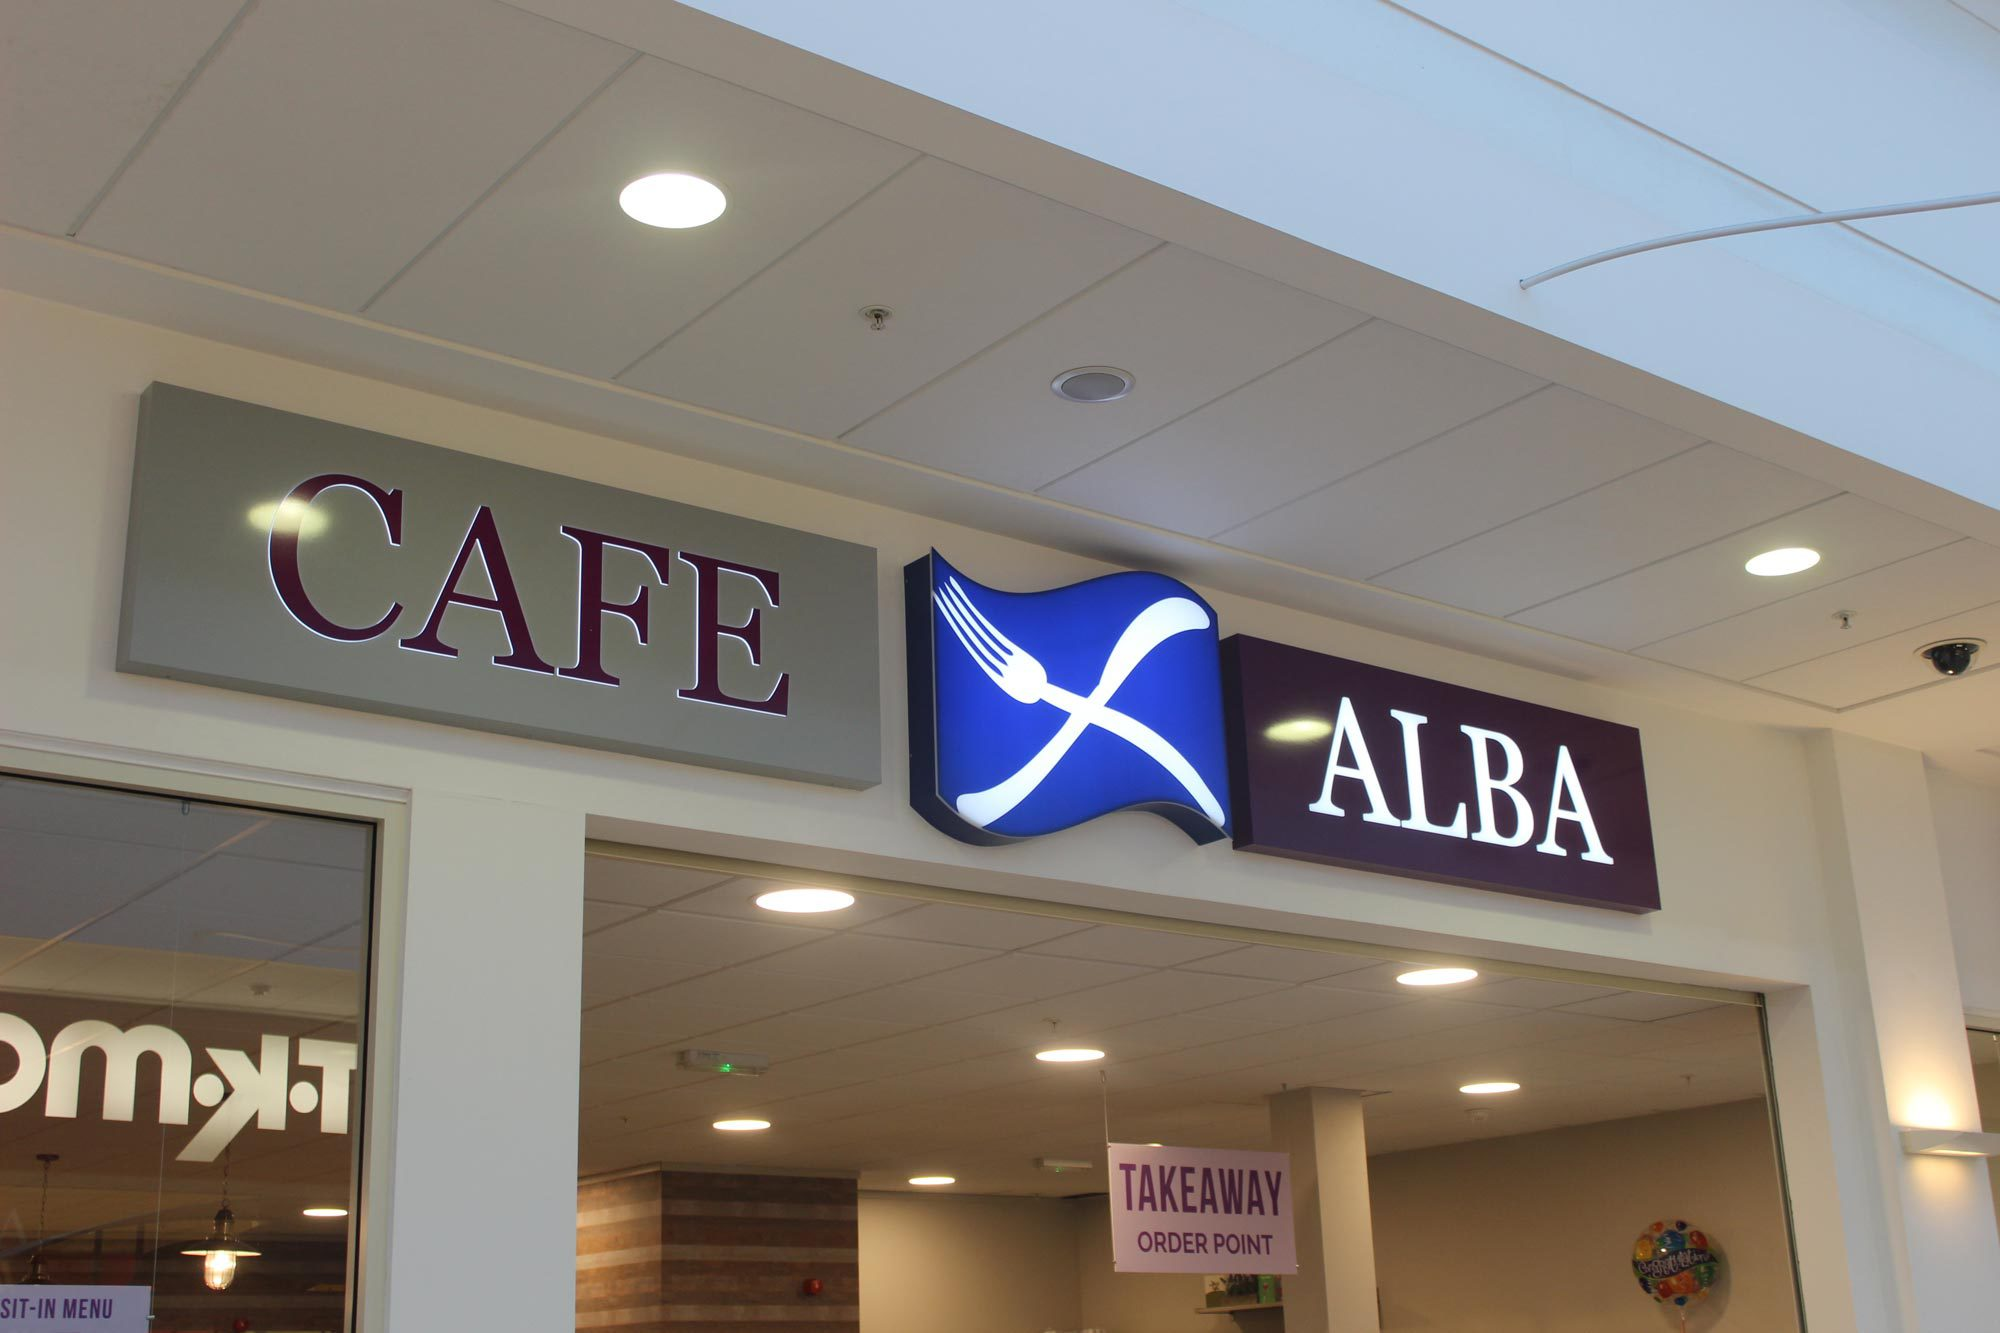 Cafe Alba sign signage